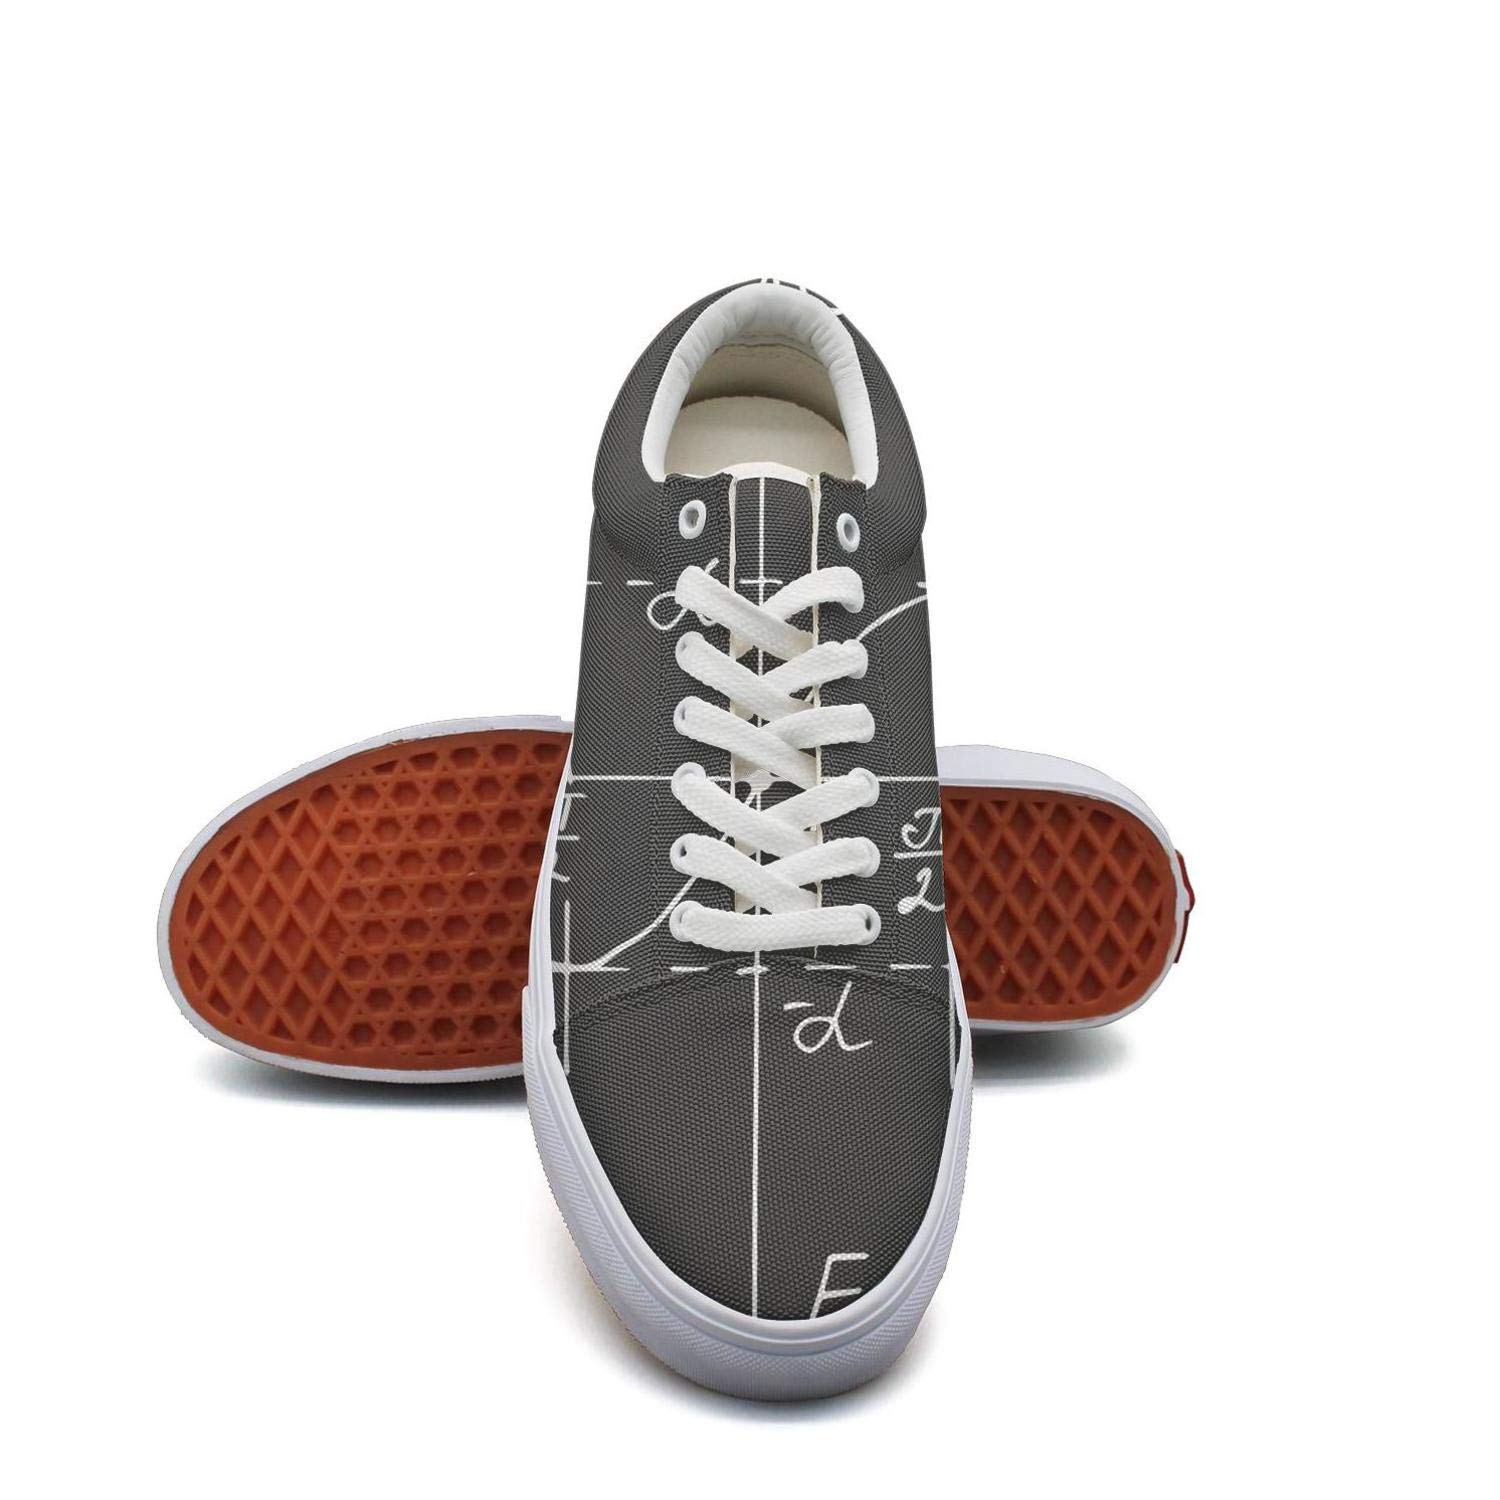 Math Physical Equations 9.5 B(M) US KSOWE3KD Womens' Man Low Cross Canvas shoes Math Equations Science Formulas Stylish Unisex Trainer shoes